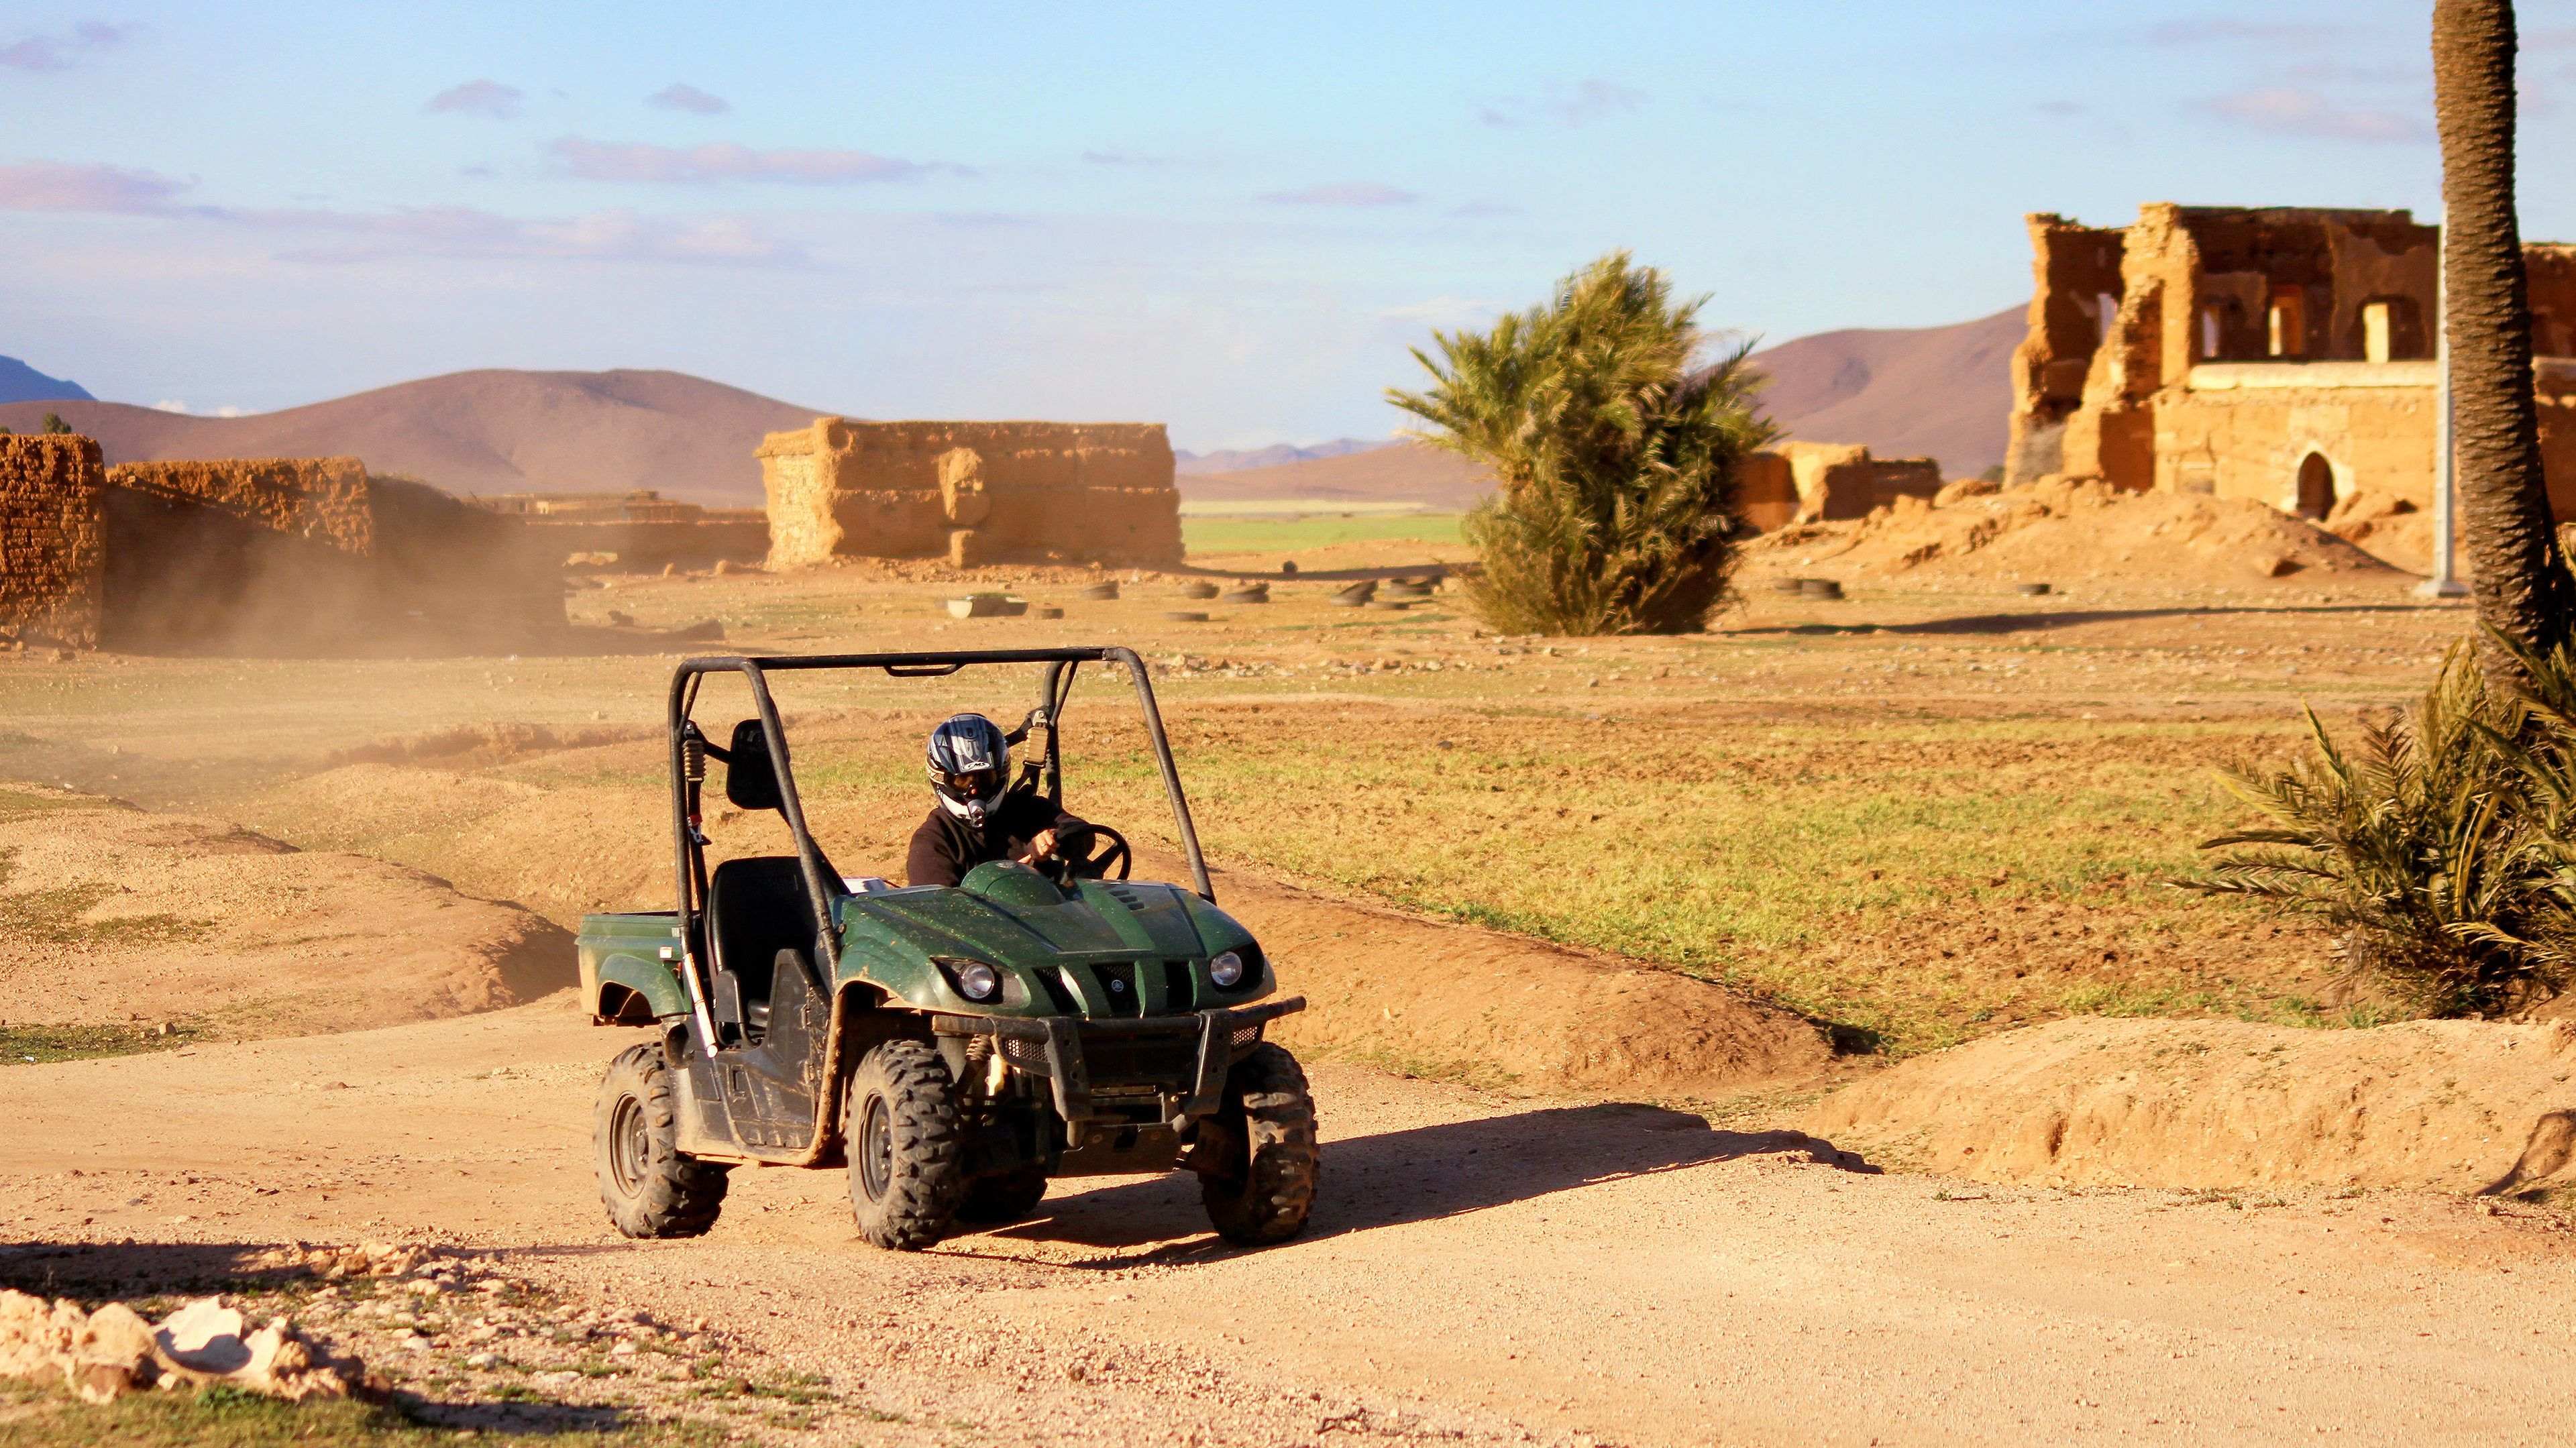 Guest on Desert Buggy Tour in Jbilets Mountains of Marrakech